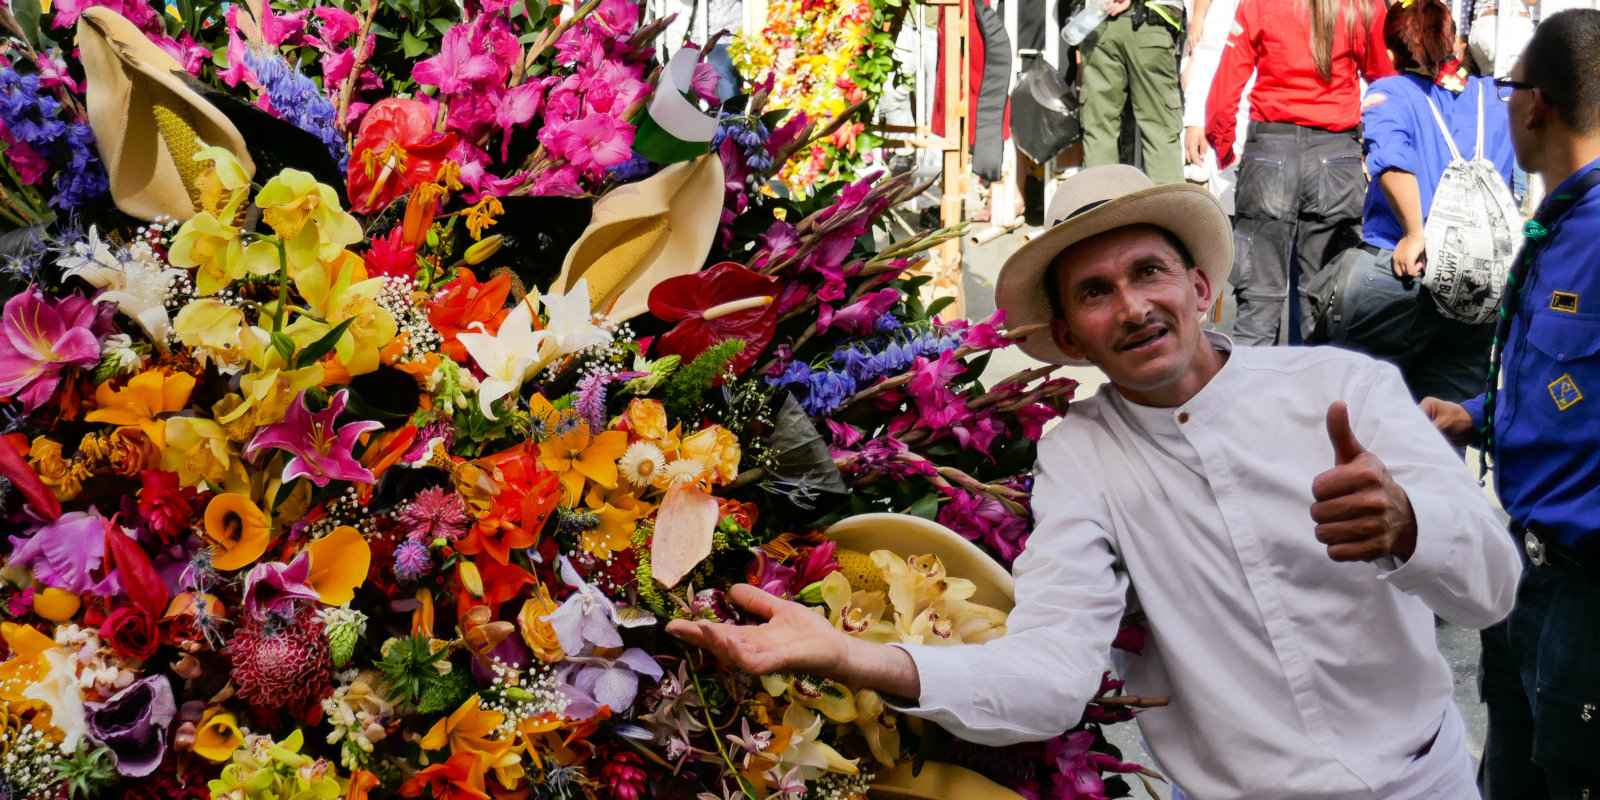 Medellin's flower festival is a riot of colour, blooms, parades and events throughout the city.